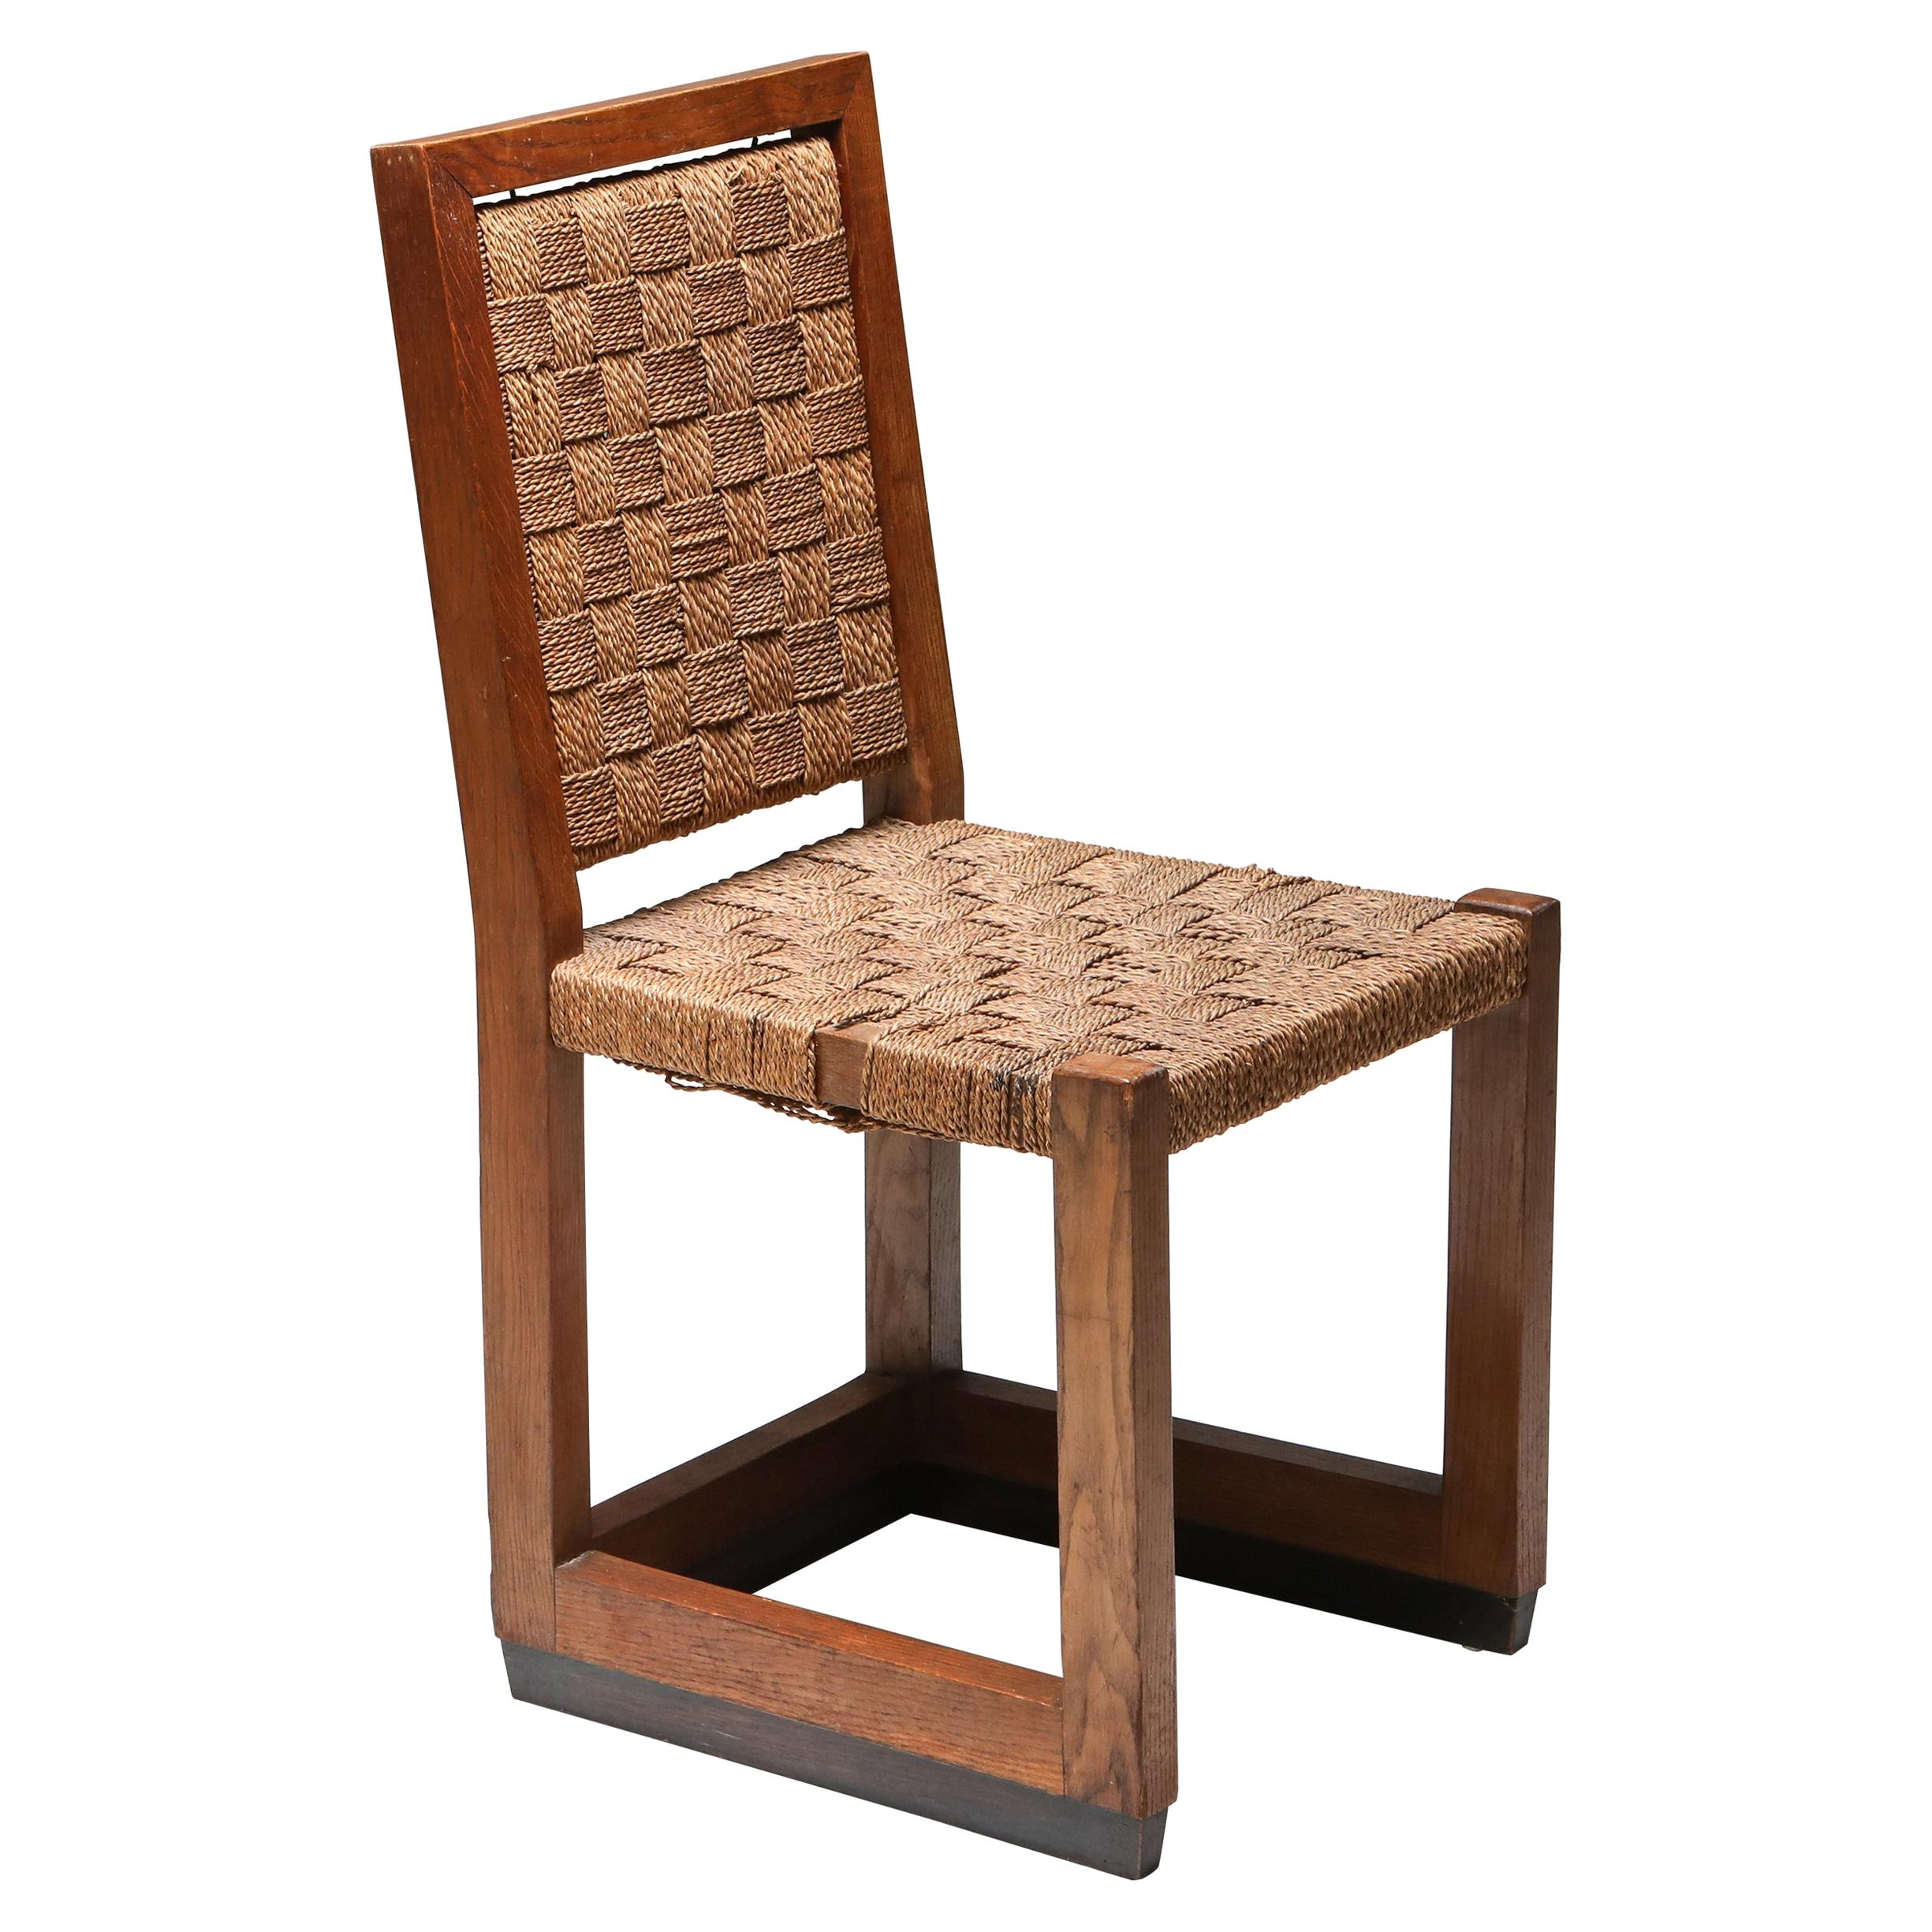 Hague School Chair with Cord Seating